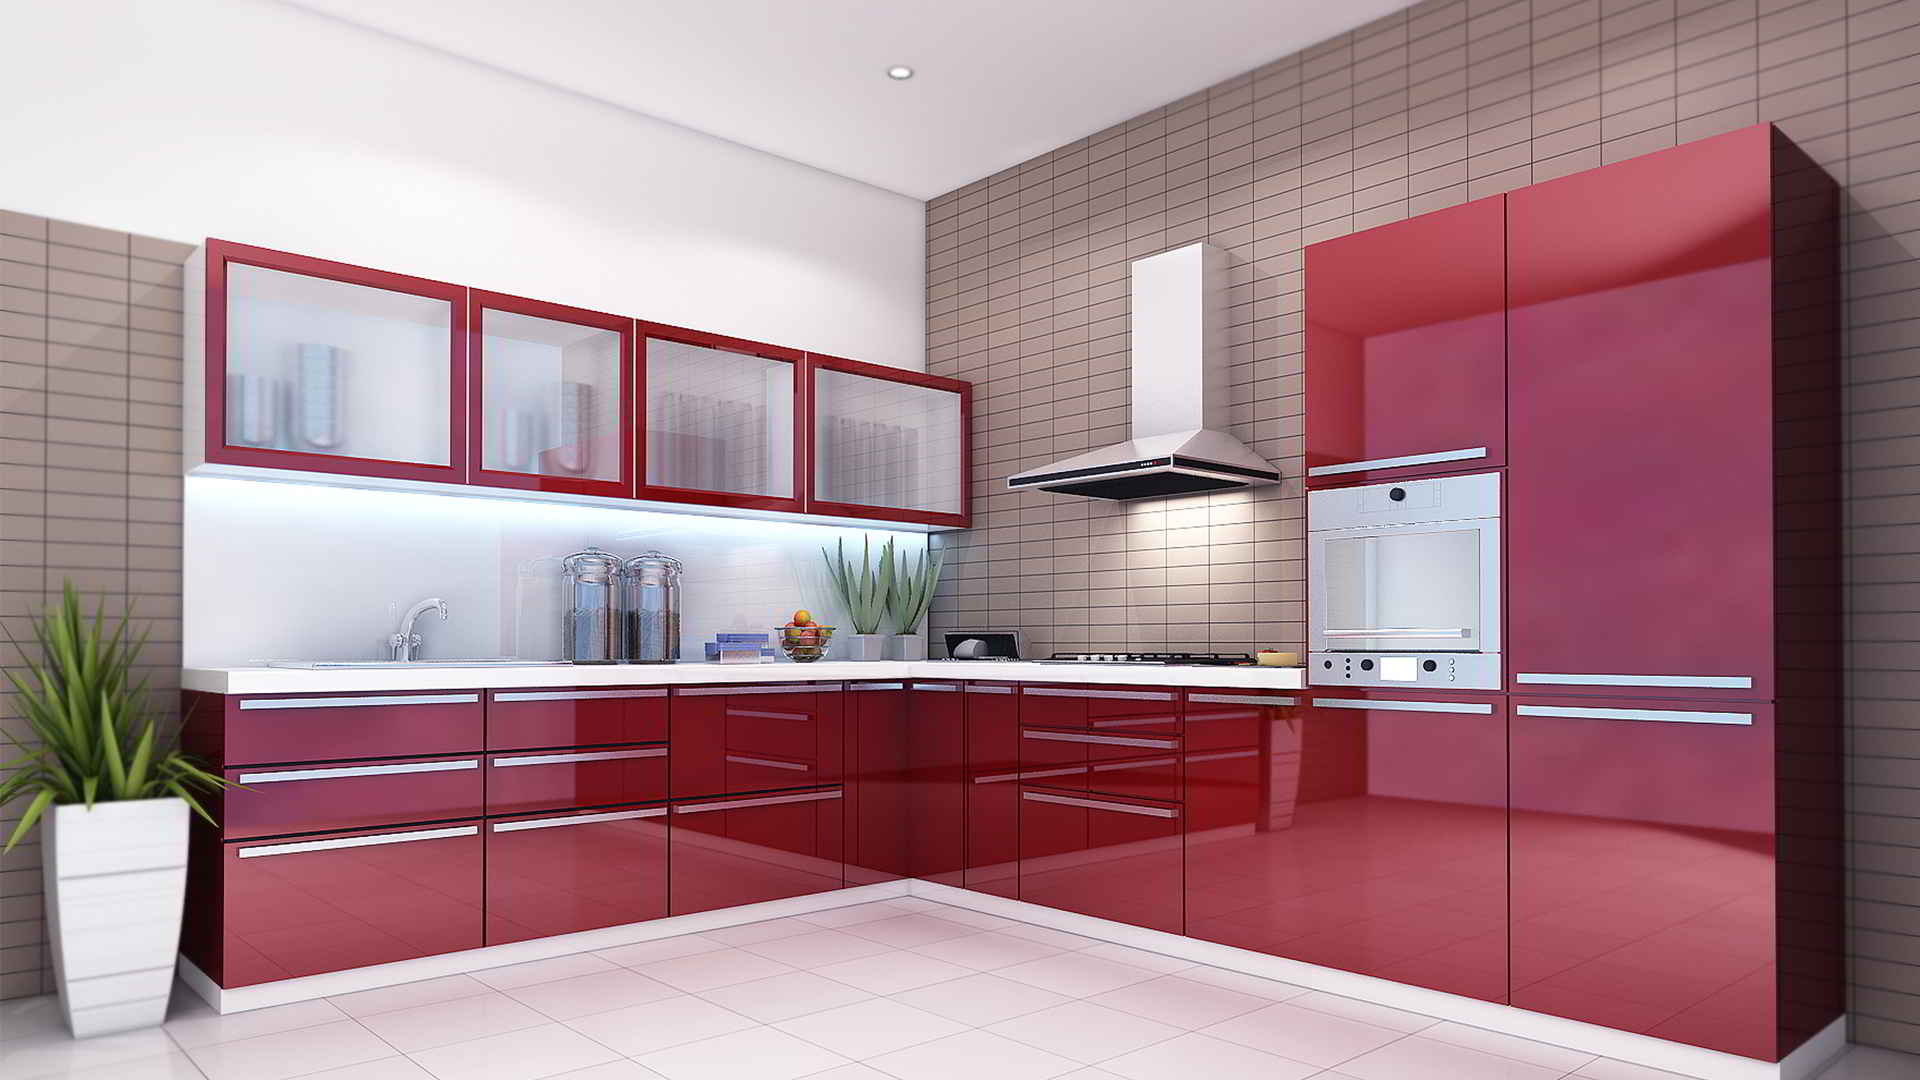 The Red Colored L Shaped Modular Kitchen Design Looks Great Because Of The  Shining Texture The Windows Have. The Drawers And Windows Of The Kitchen  Are ... Part 93